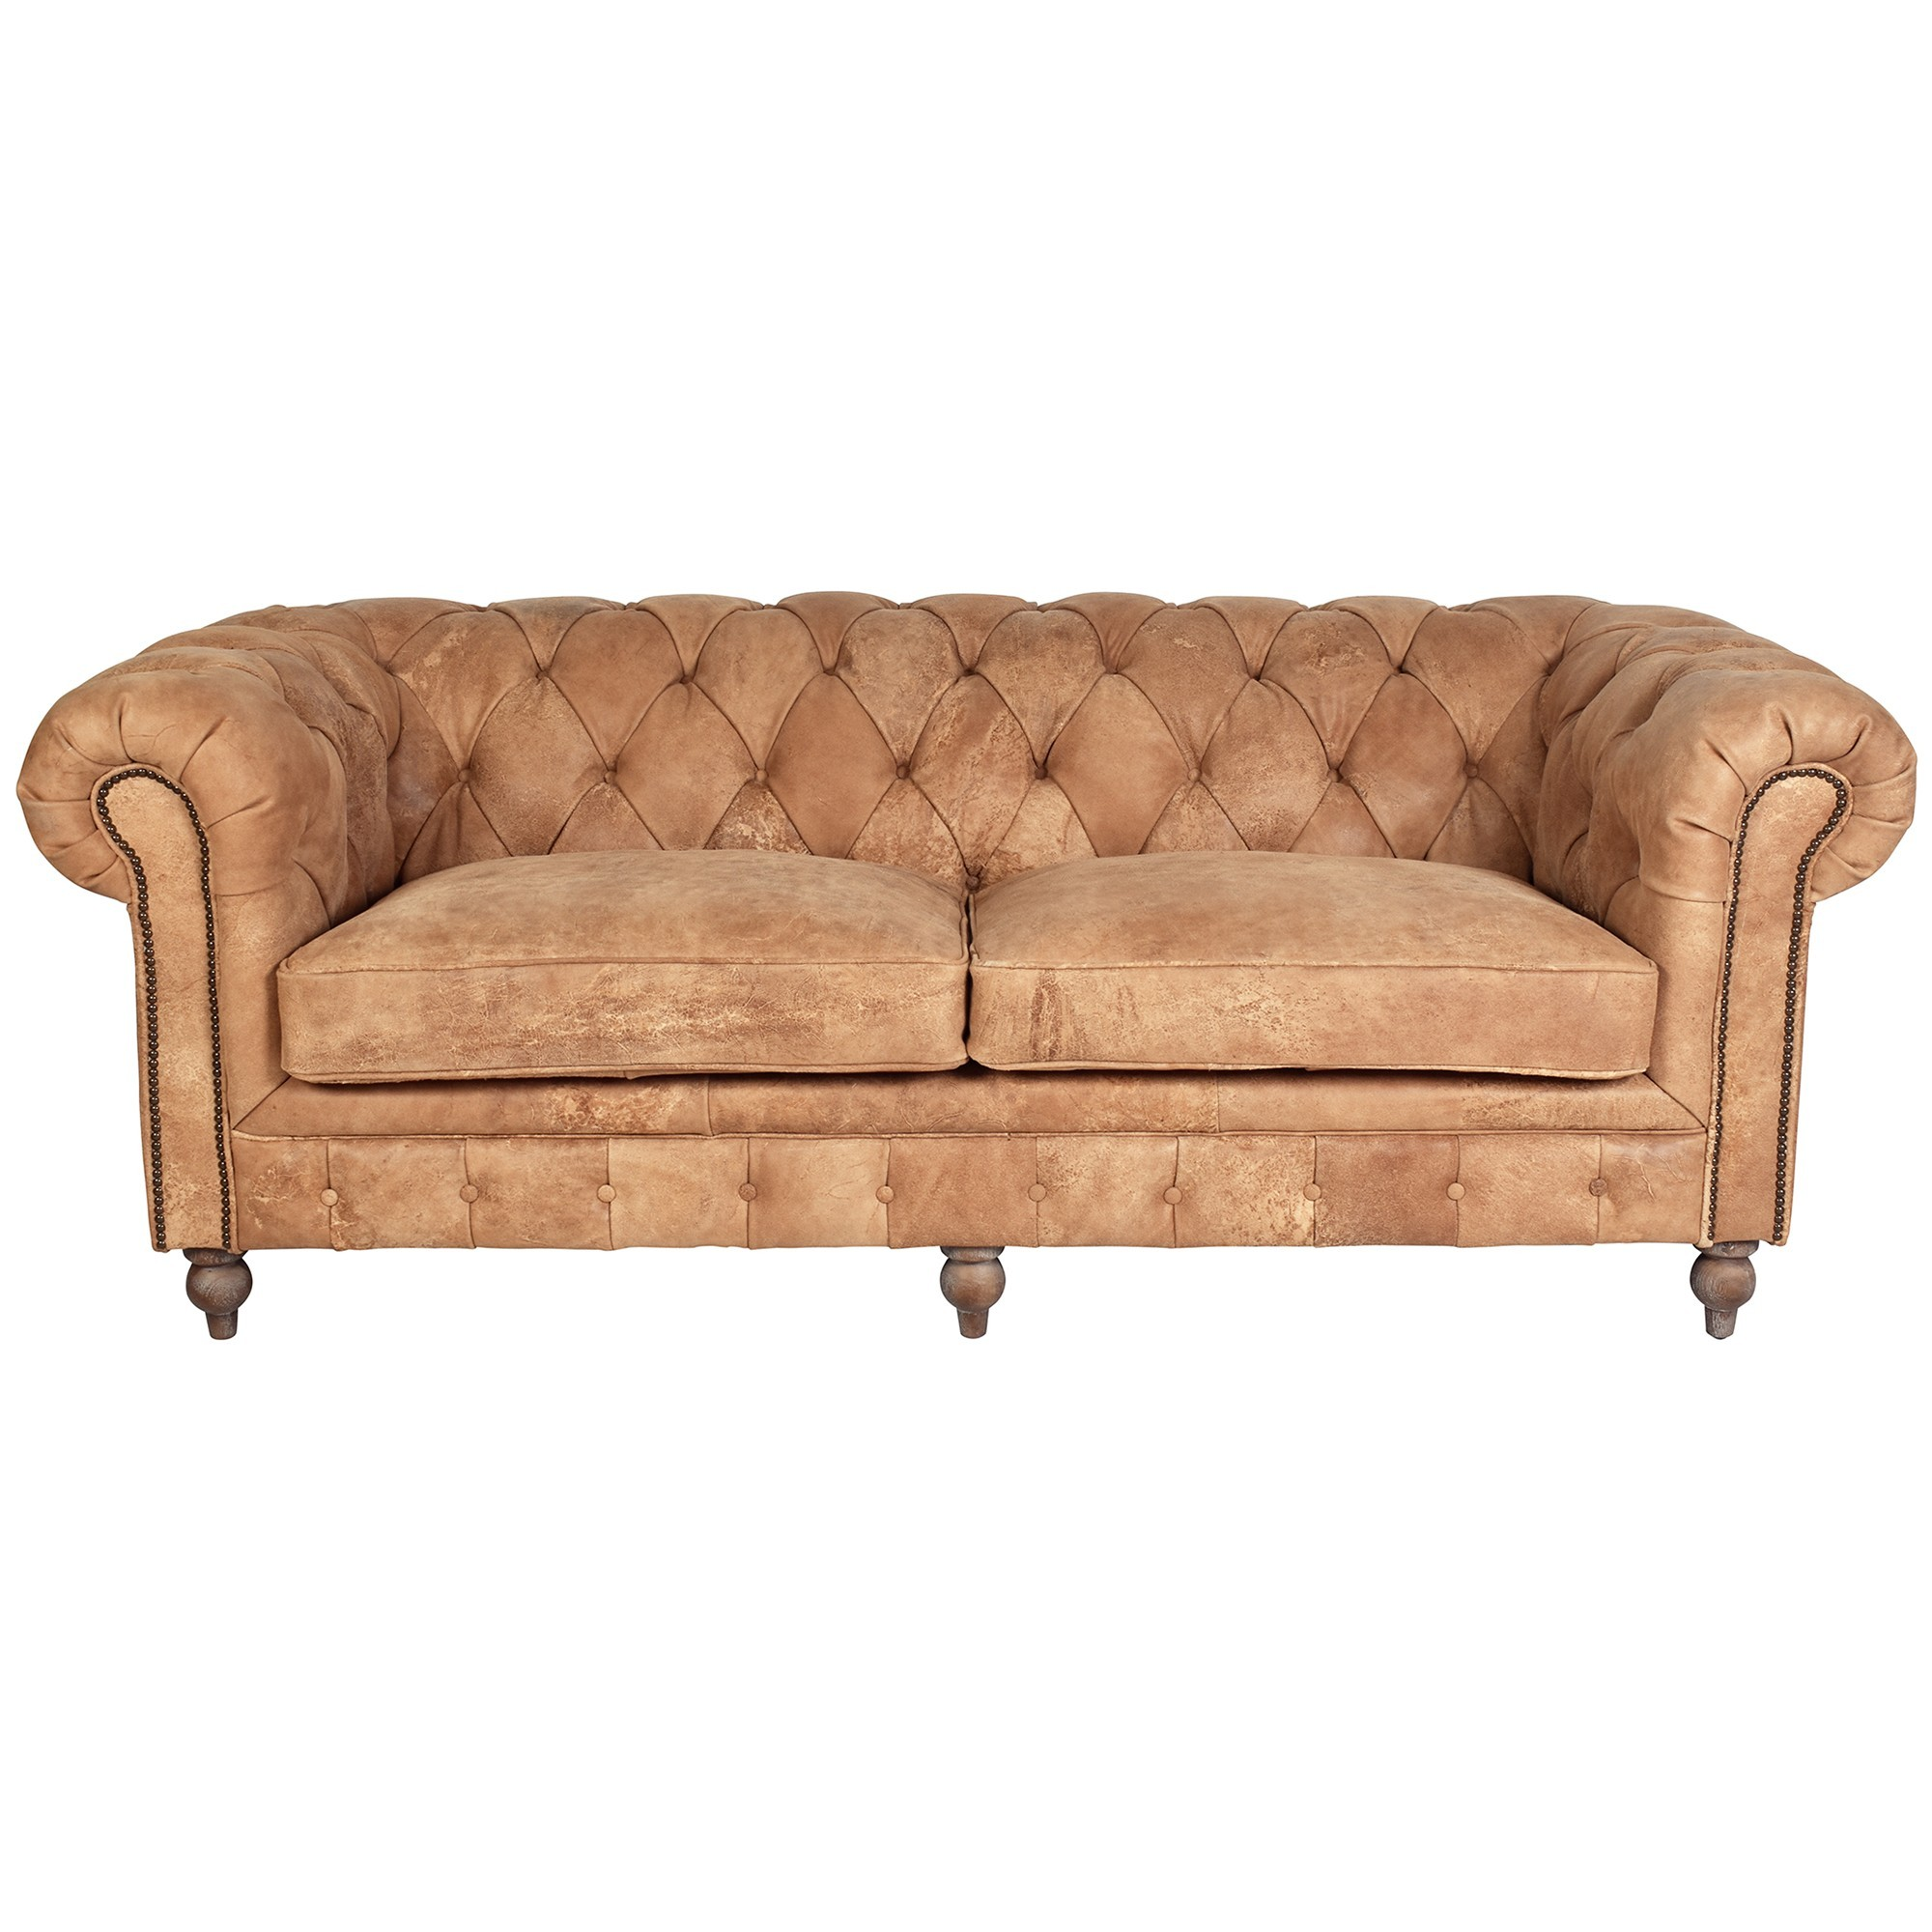 Barmston Aged Leather Chestfield Sofa, 3 Seater, Caramel